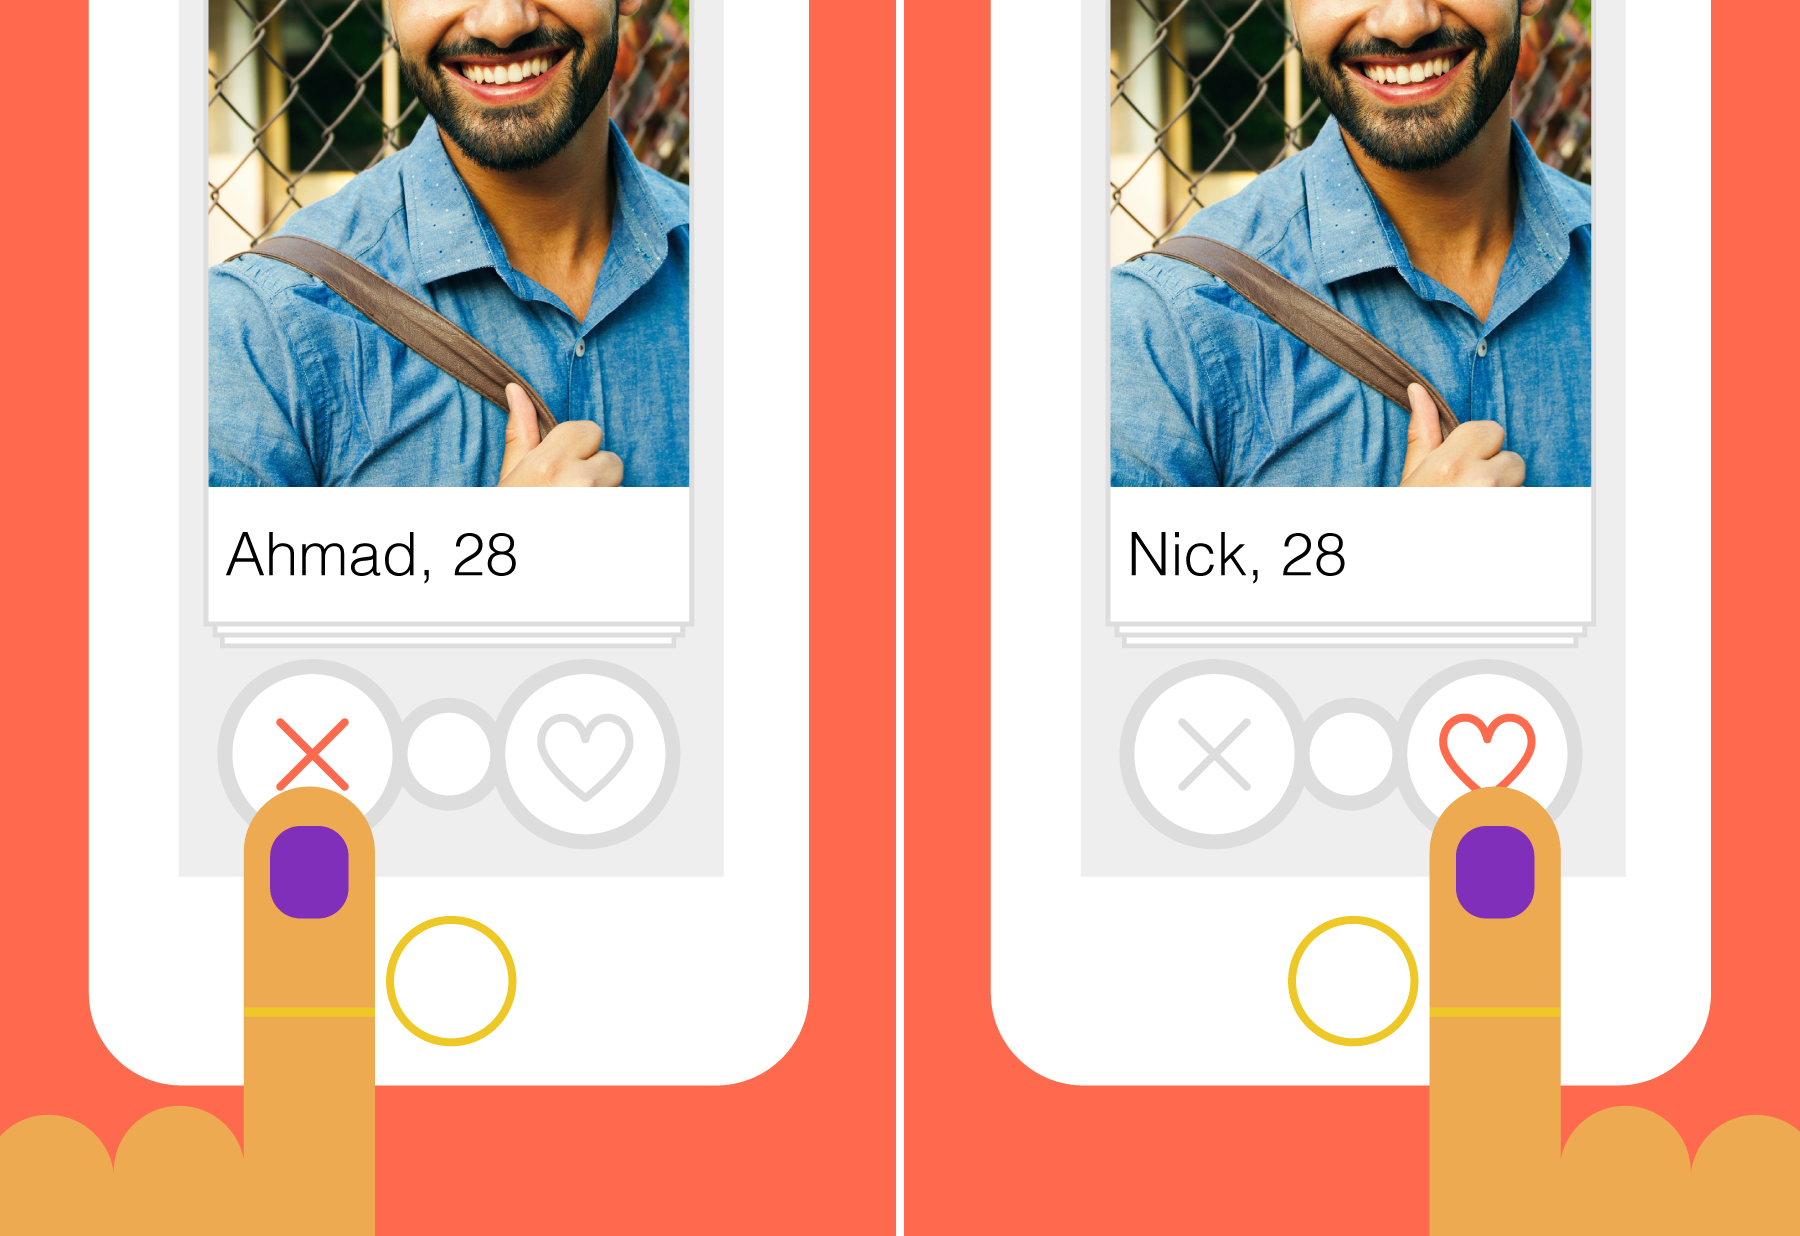 Guy Makes His Name Whiter, Gets More Tinder Matches Because People Are the Worst